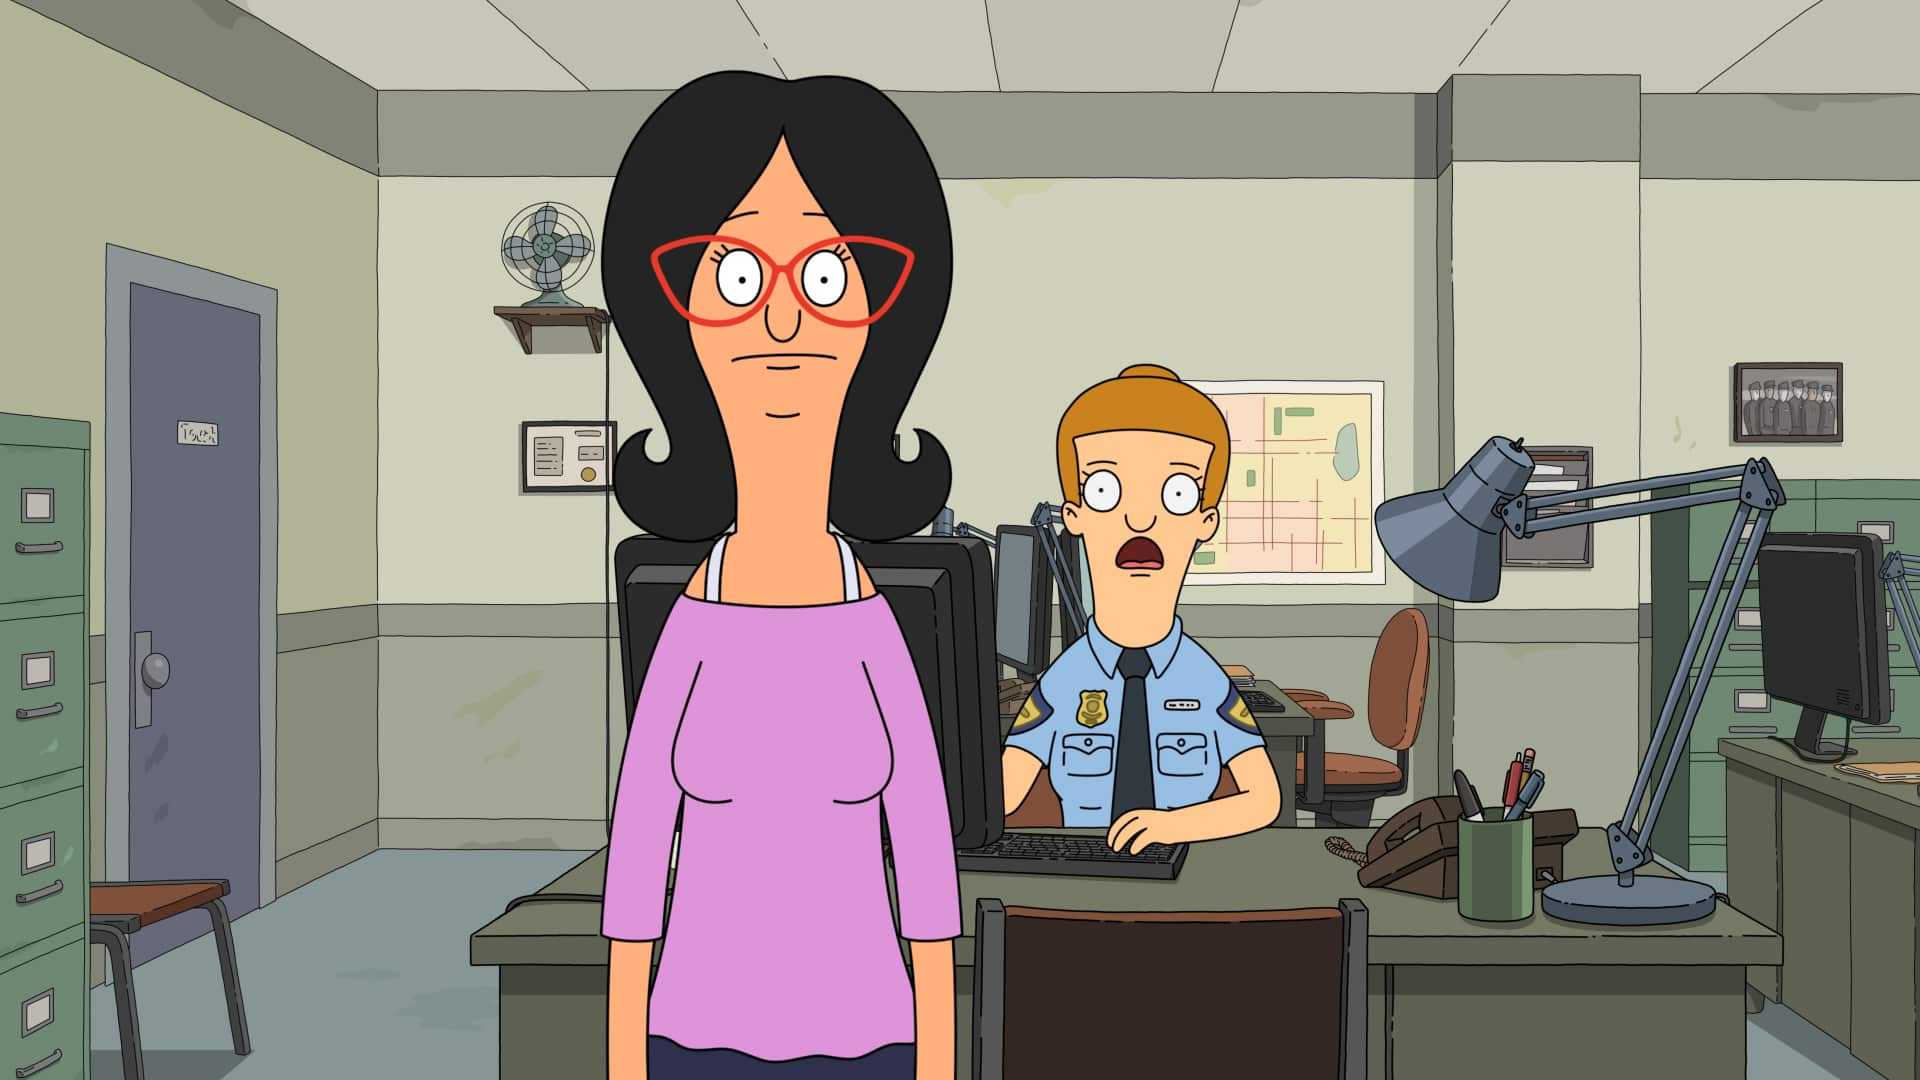 """BOB'S BURGERS: LindaÕs new routine of diet and exercise gives her gastrointestinal trouble on the day of parent-teacher-student conferences in the """"Sheshank Redumption"""" episode of BOBÕS BURGERS airing Sunday, March 21 (9:00-9:30 PM ET/PT) on FOX. Guest voice Tig Notaro. BOBÕS BURGERS © 2021 by 20th Television."""